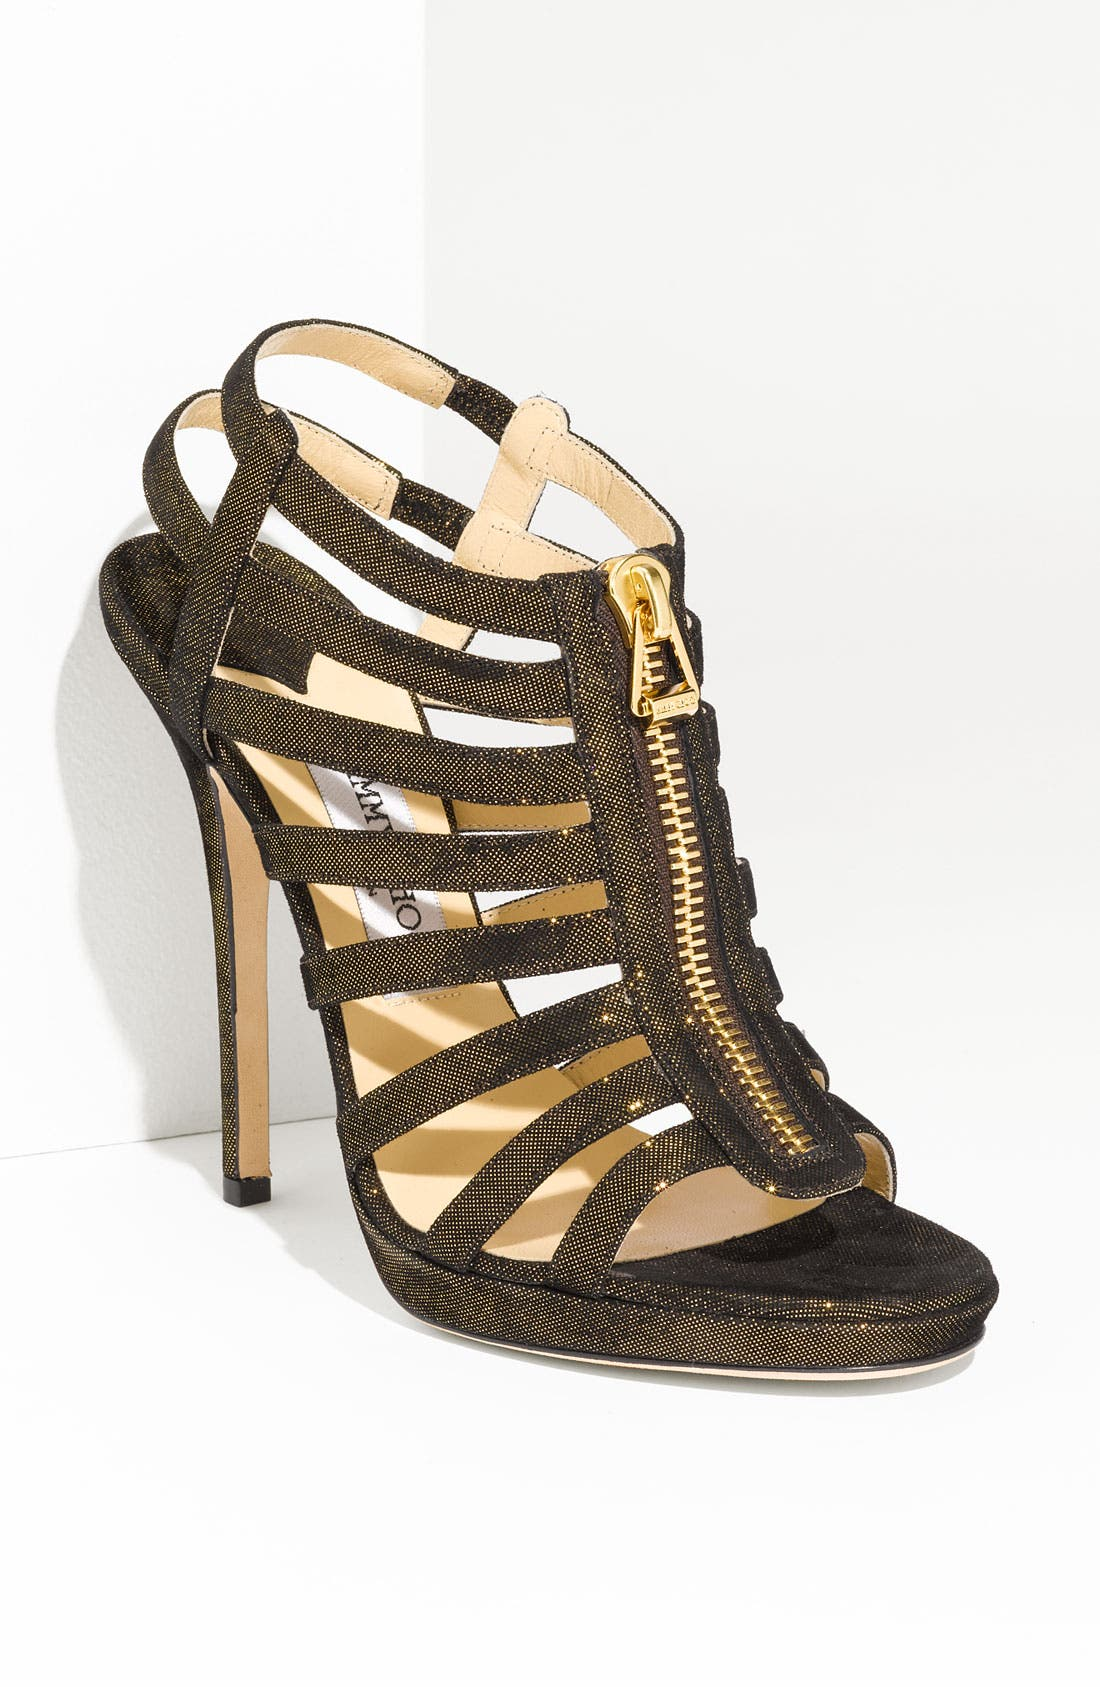 Main Image - Jimmy Choo 'Glenys' Glitter Suede Caged Sandal